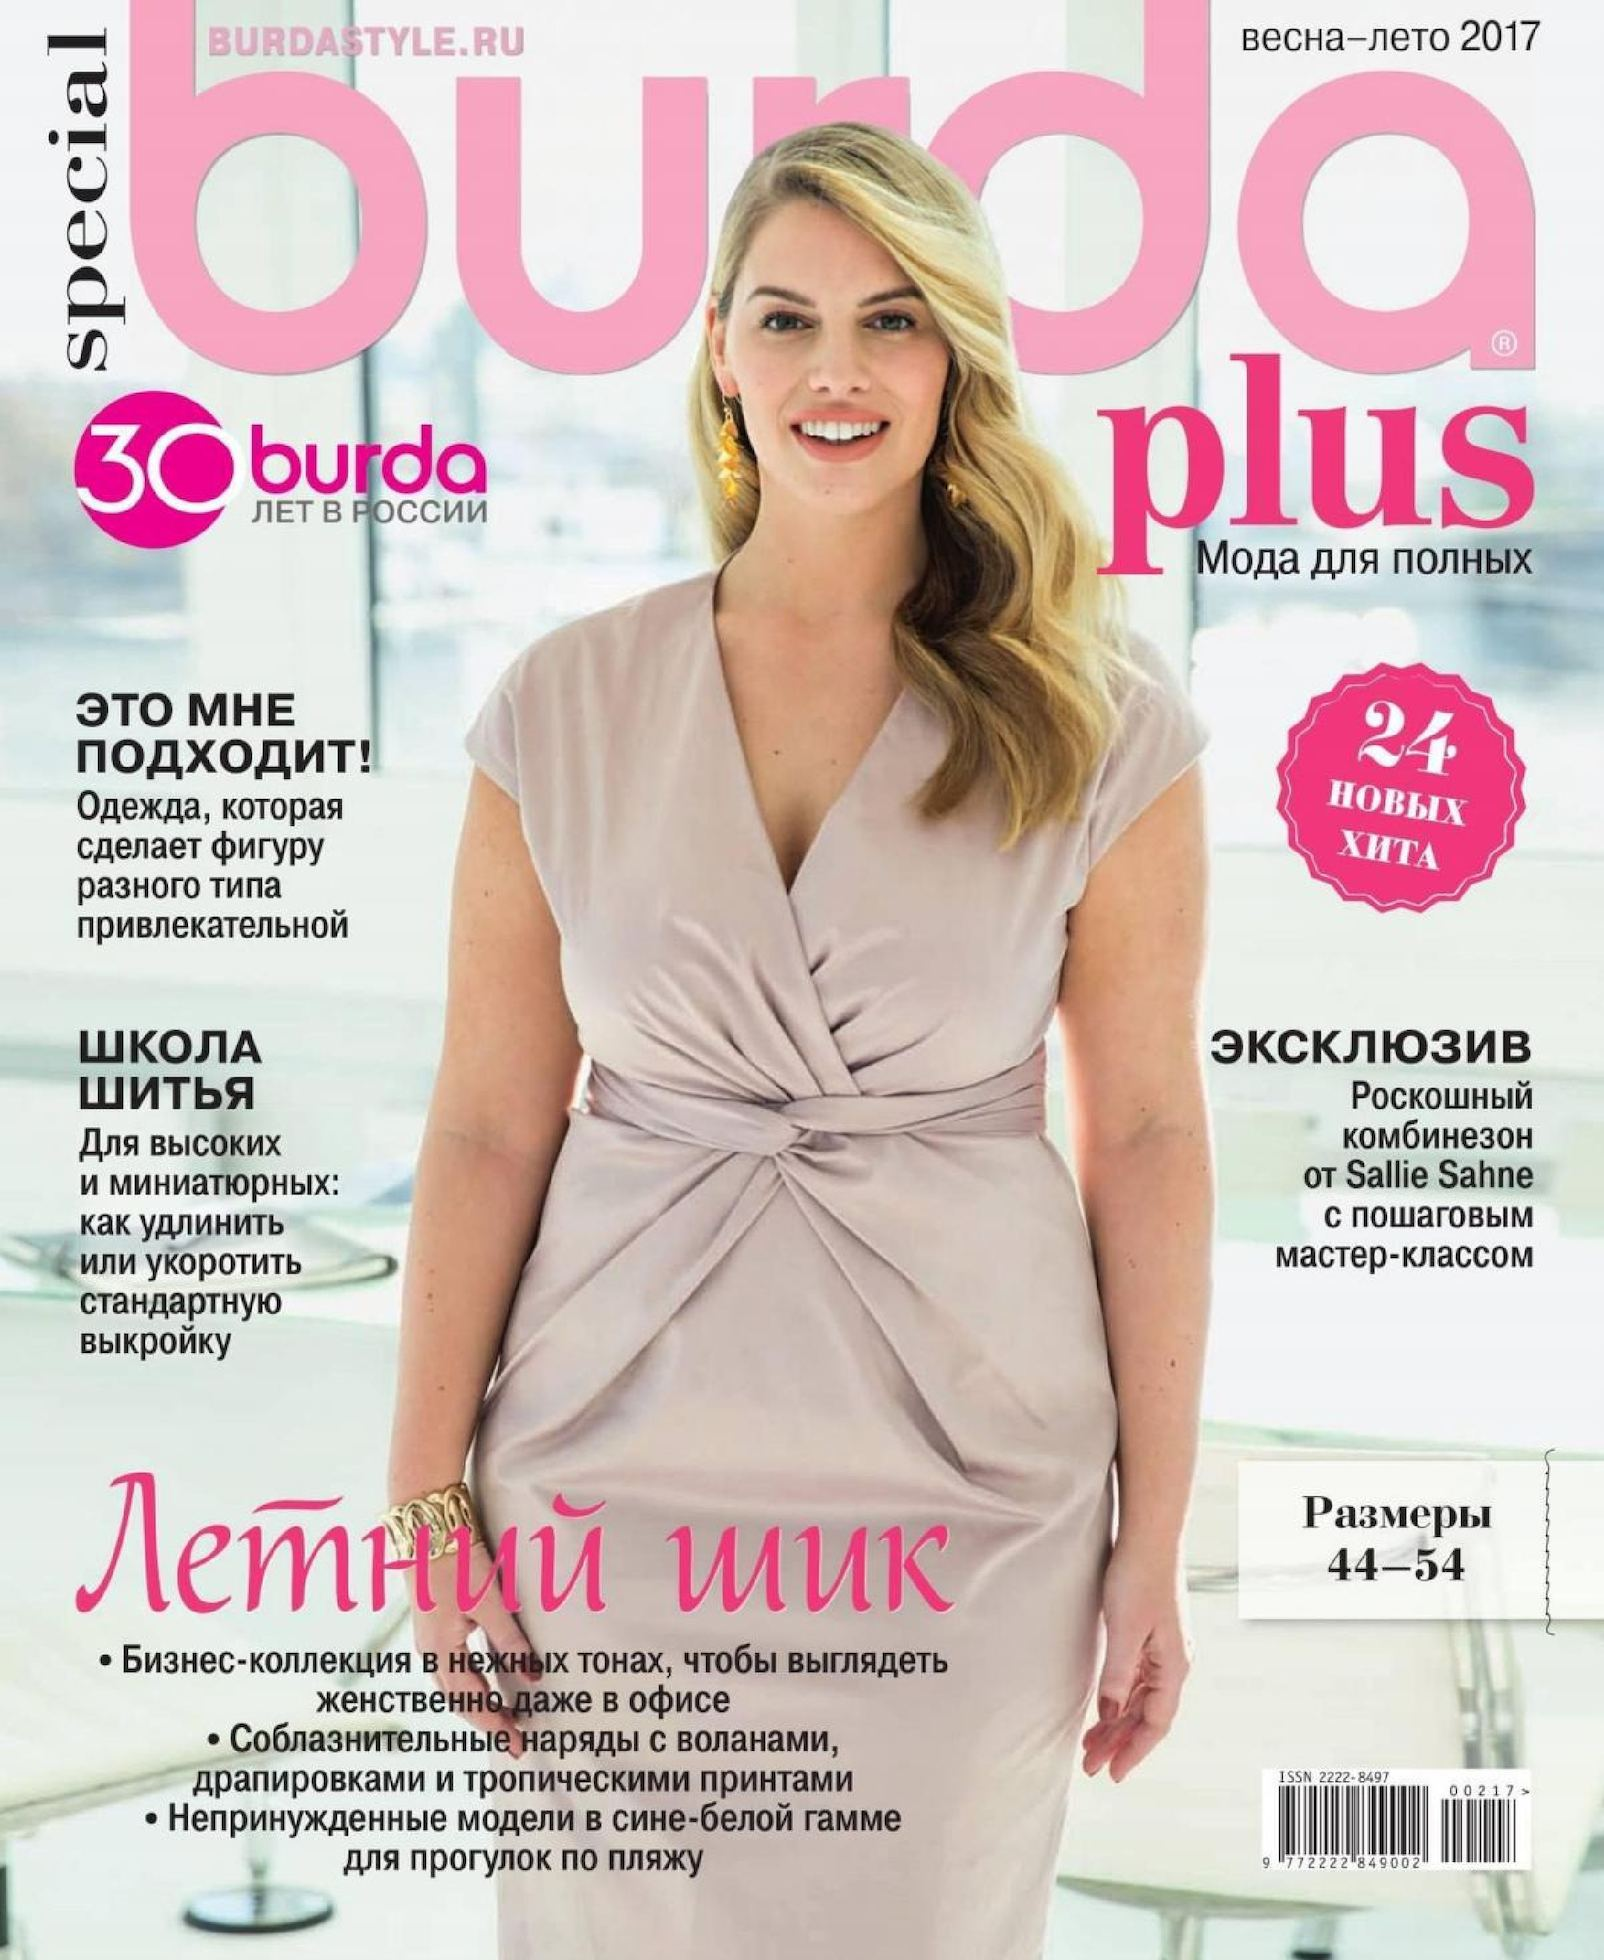 Burda Plus Spring Summer 2017